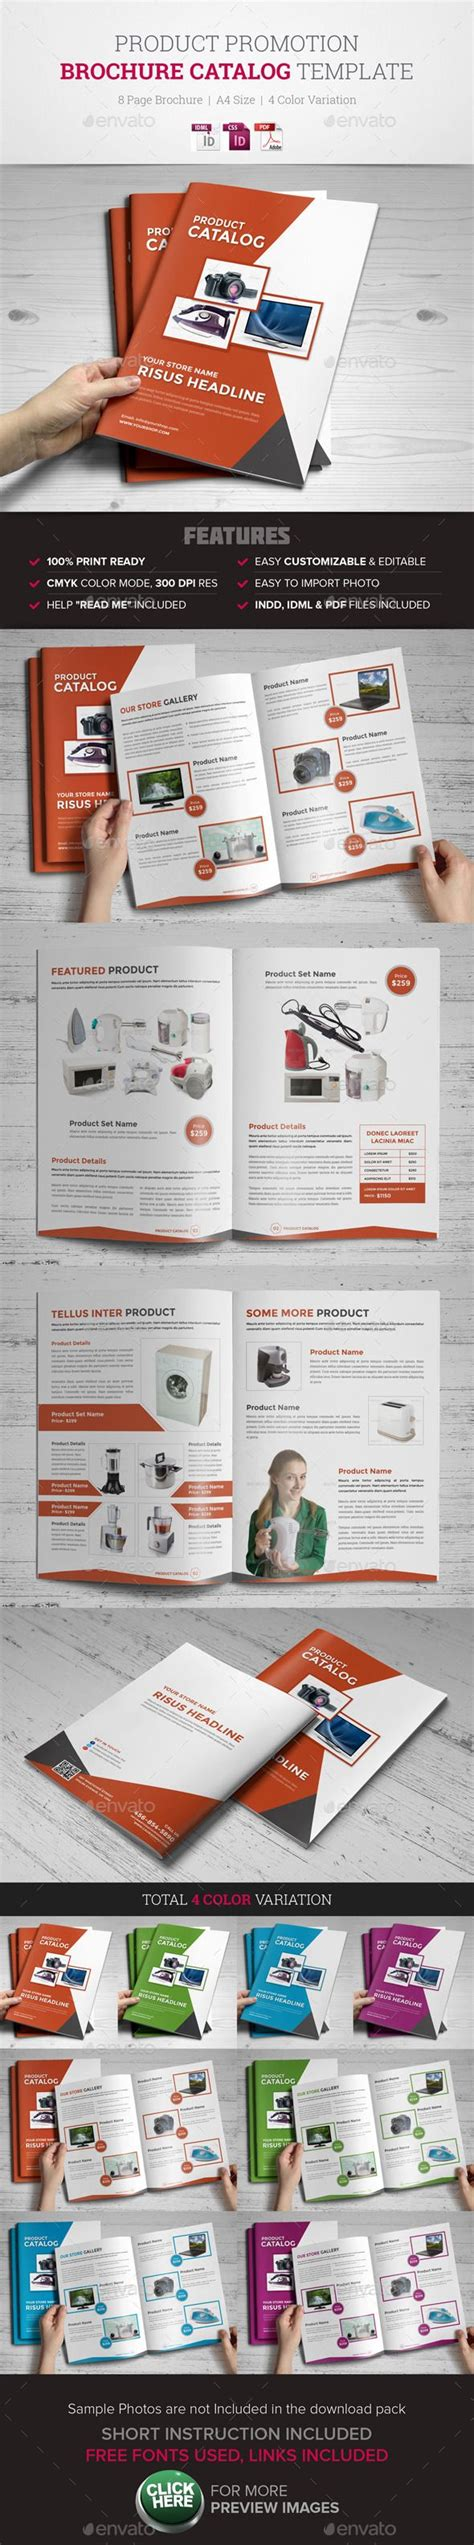 best 25 product catalog template ideas on pinterest